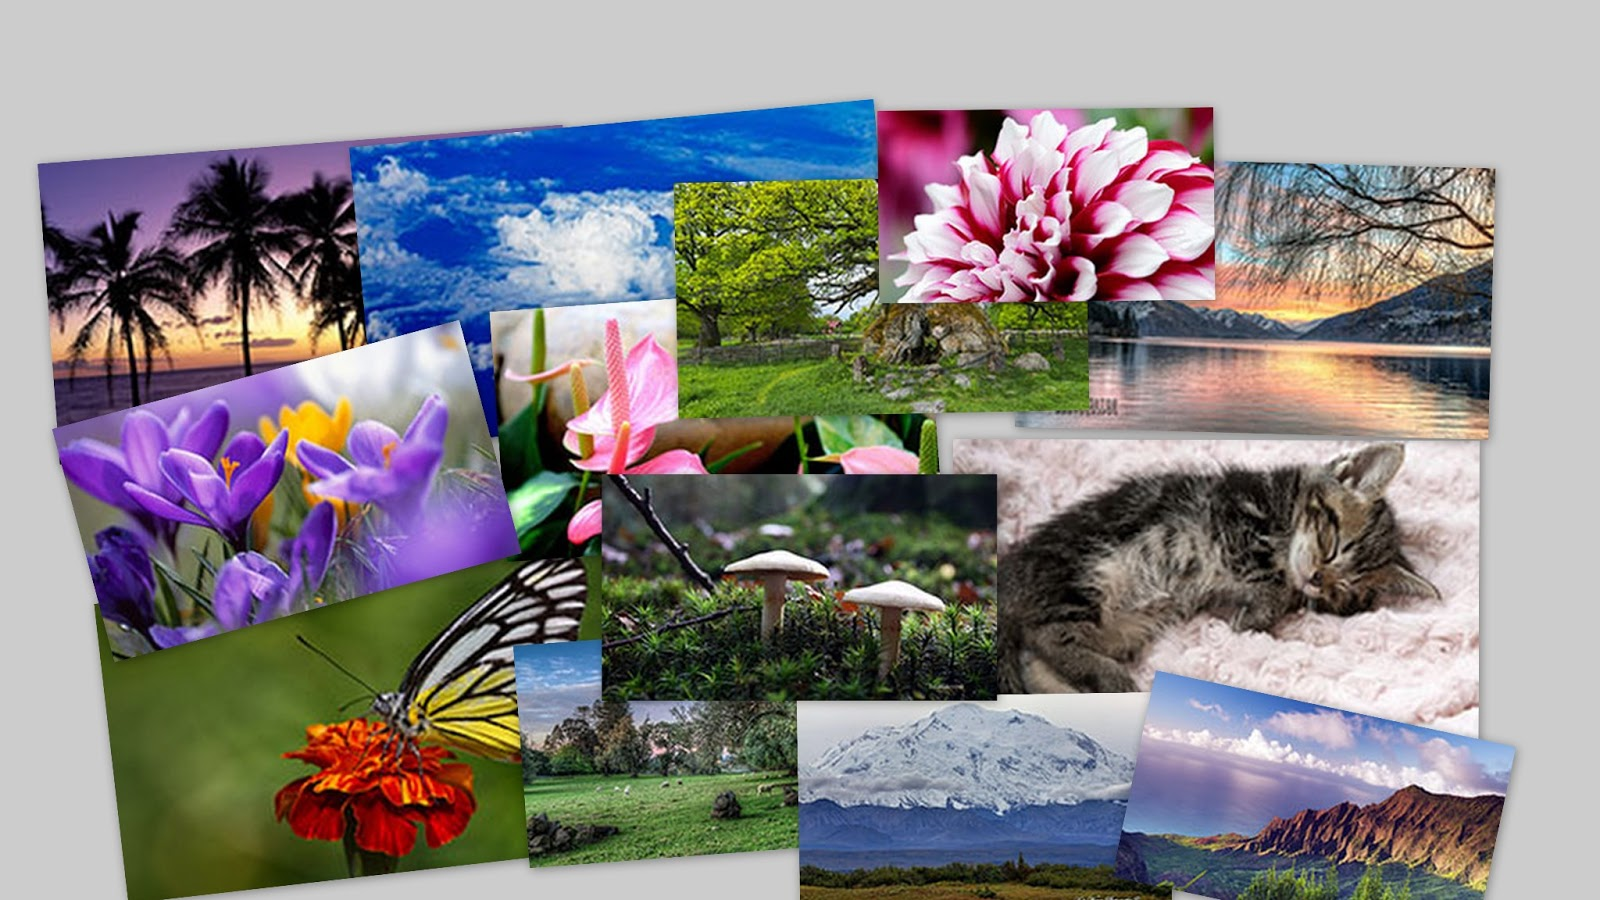 Free Live Wallpapers For Windows 8: Windows 8.1 Live Wallpaper